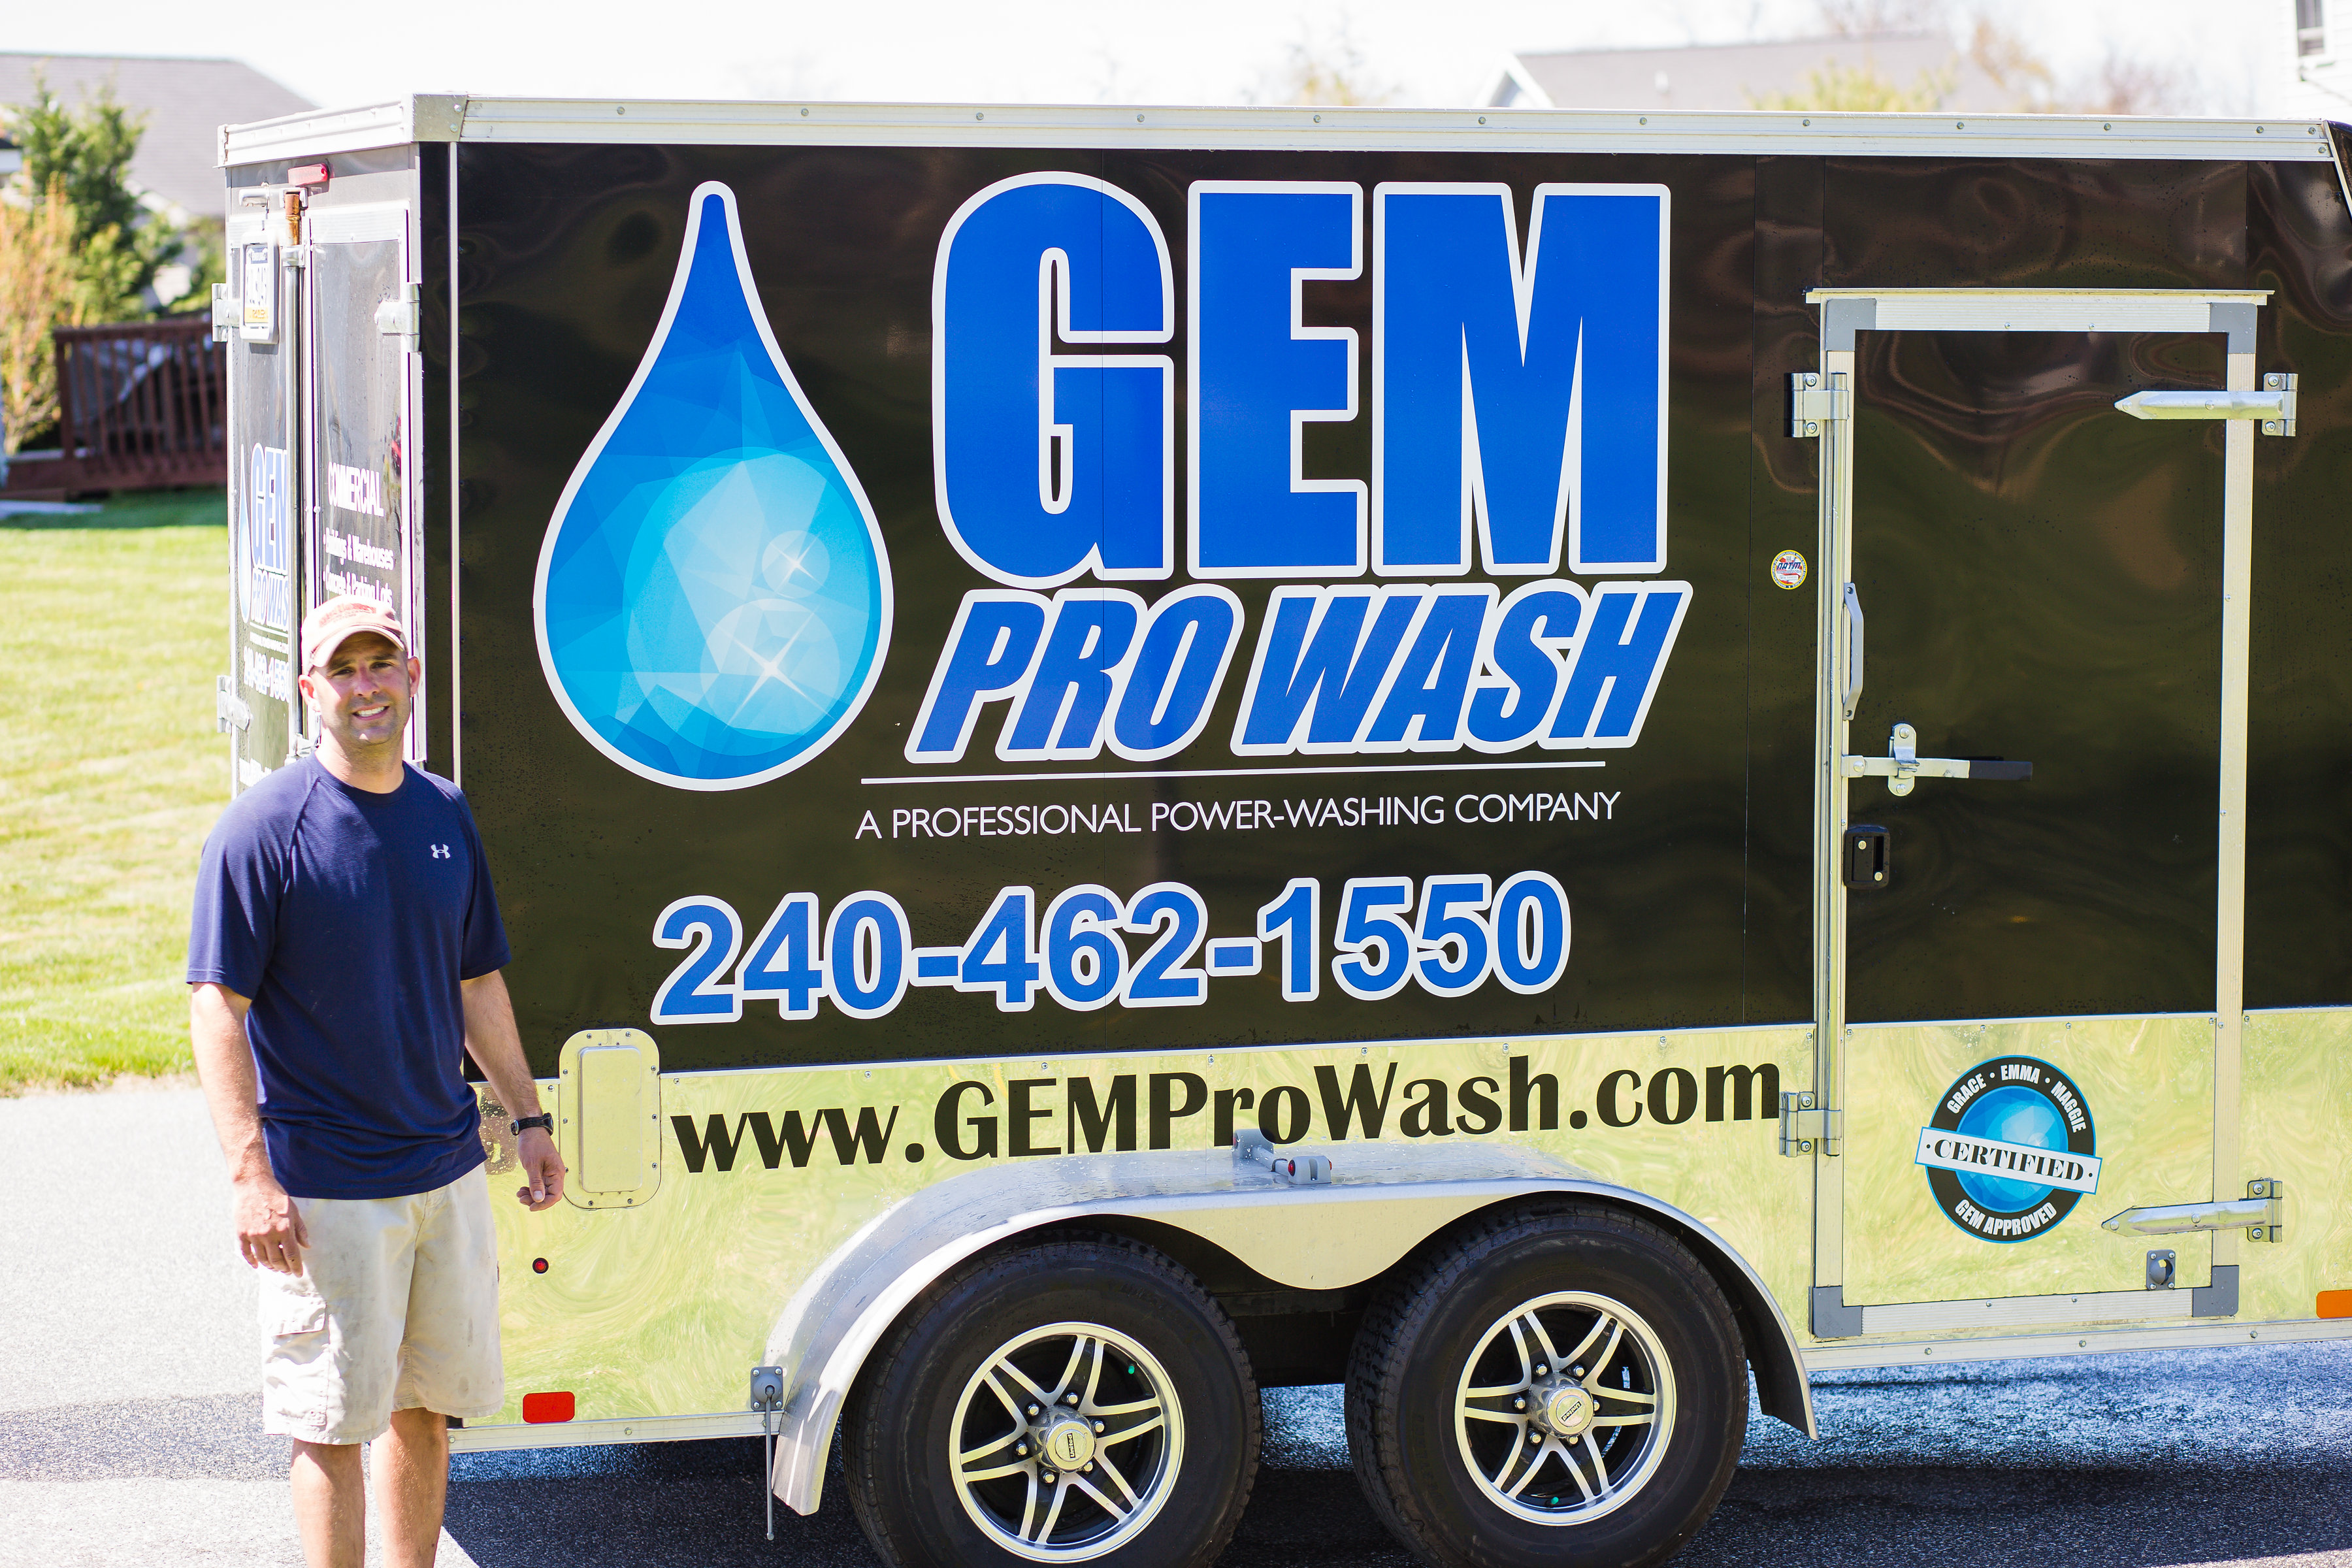 Gem Pro Wash | Sidewalk Cleaning Company in Martinsburg WV